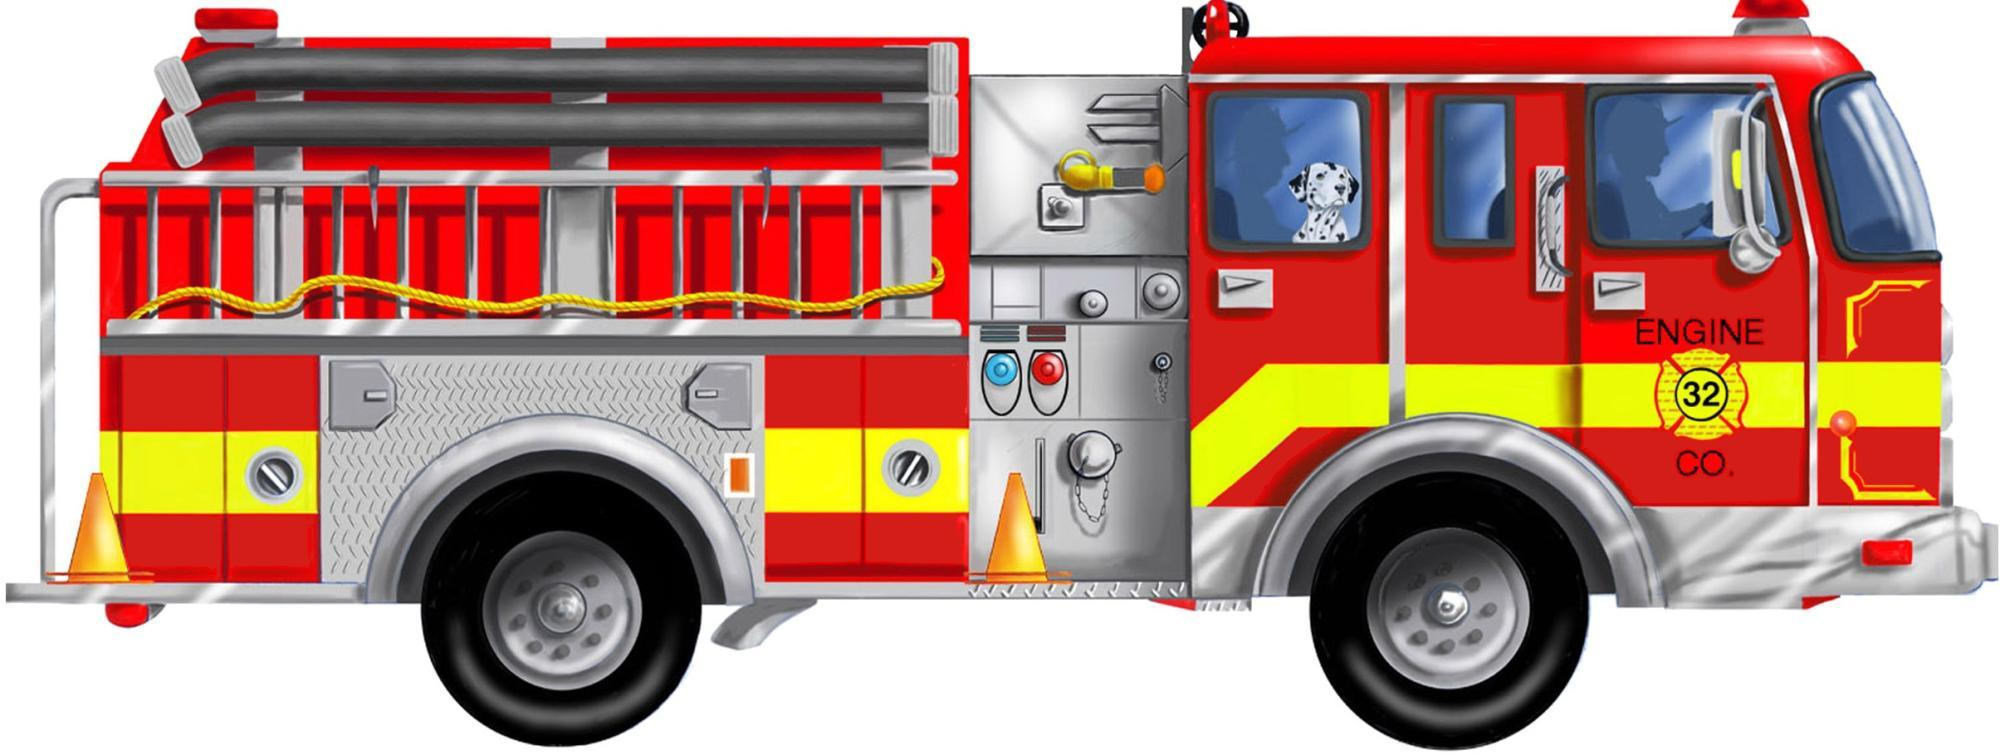 Fire Truck clipart side view Fire fire Clipart Fire Collection